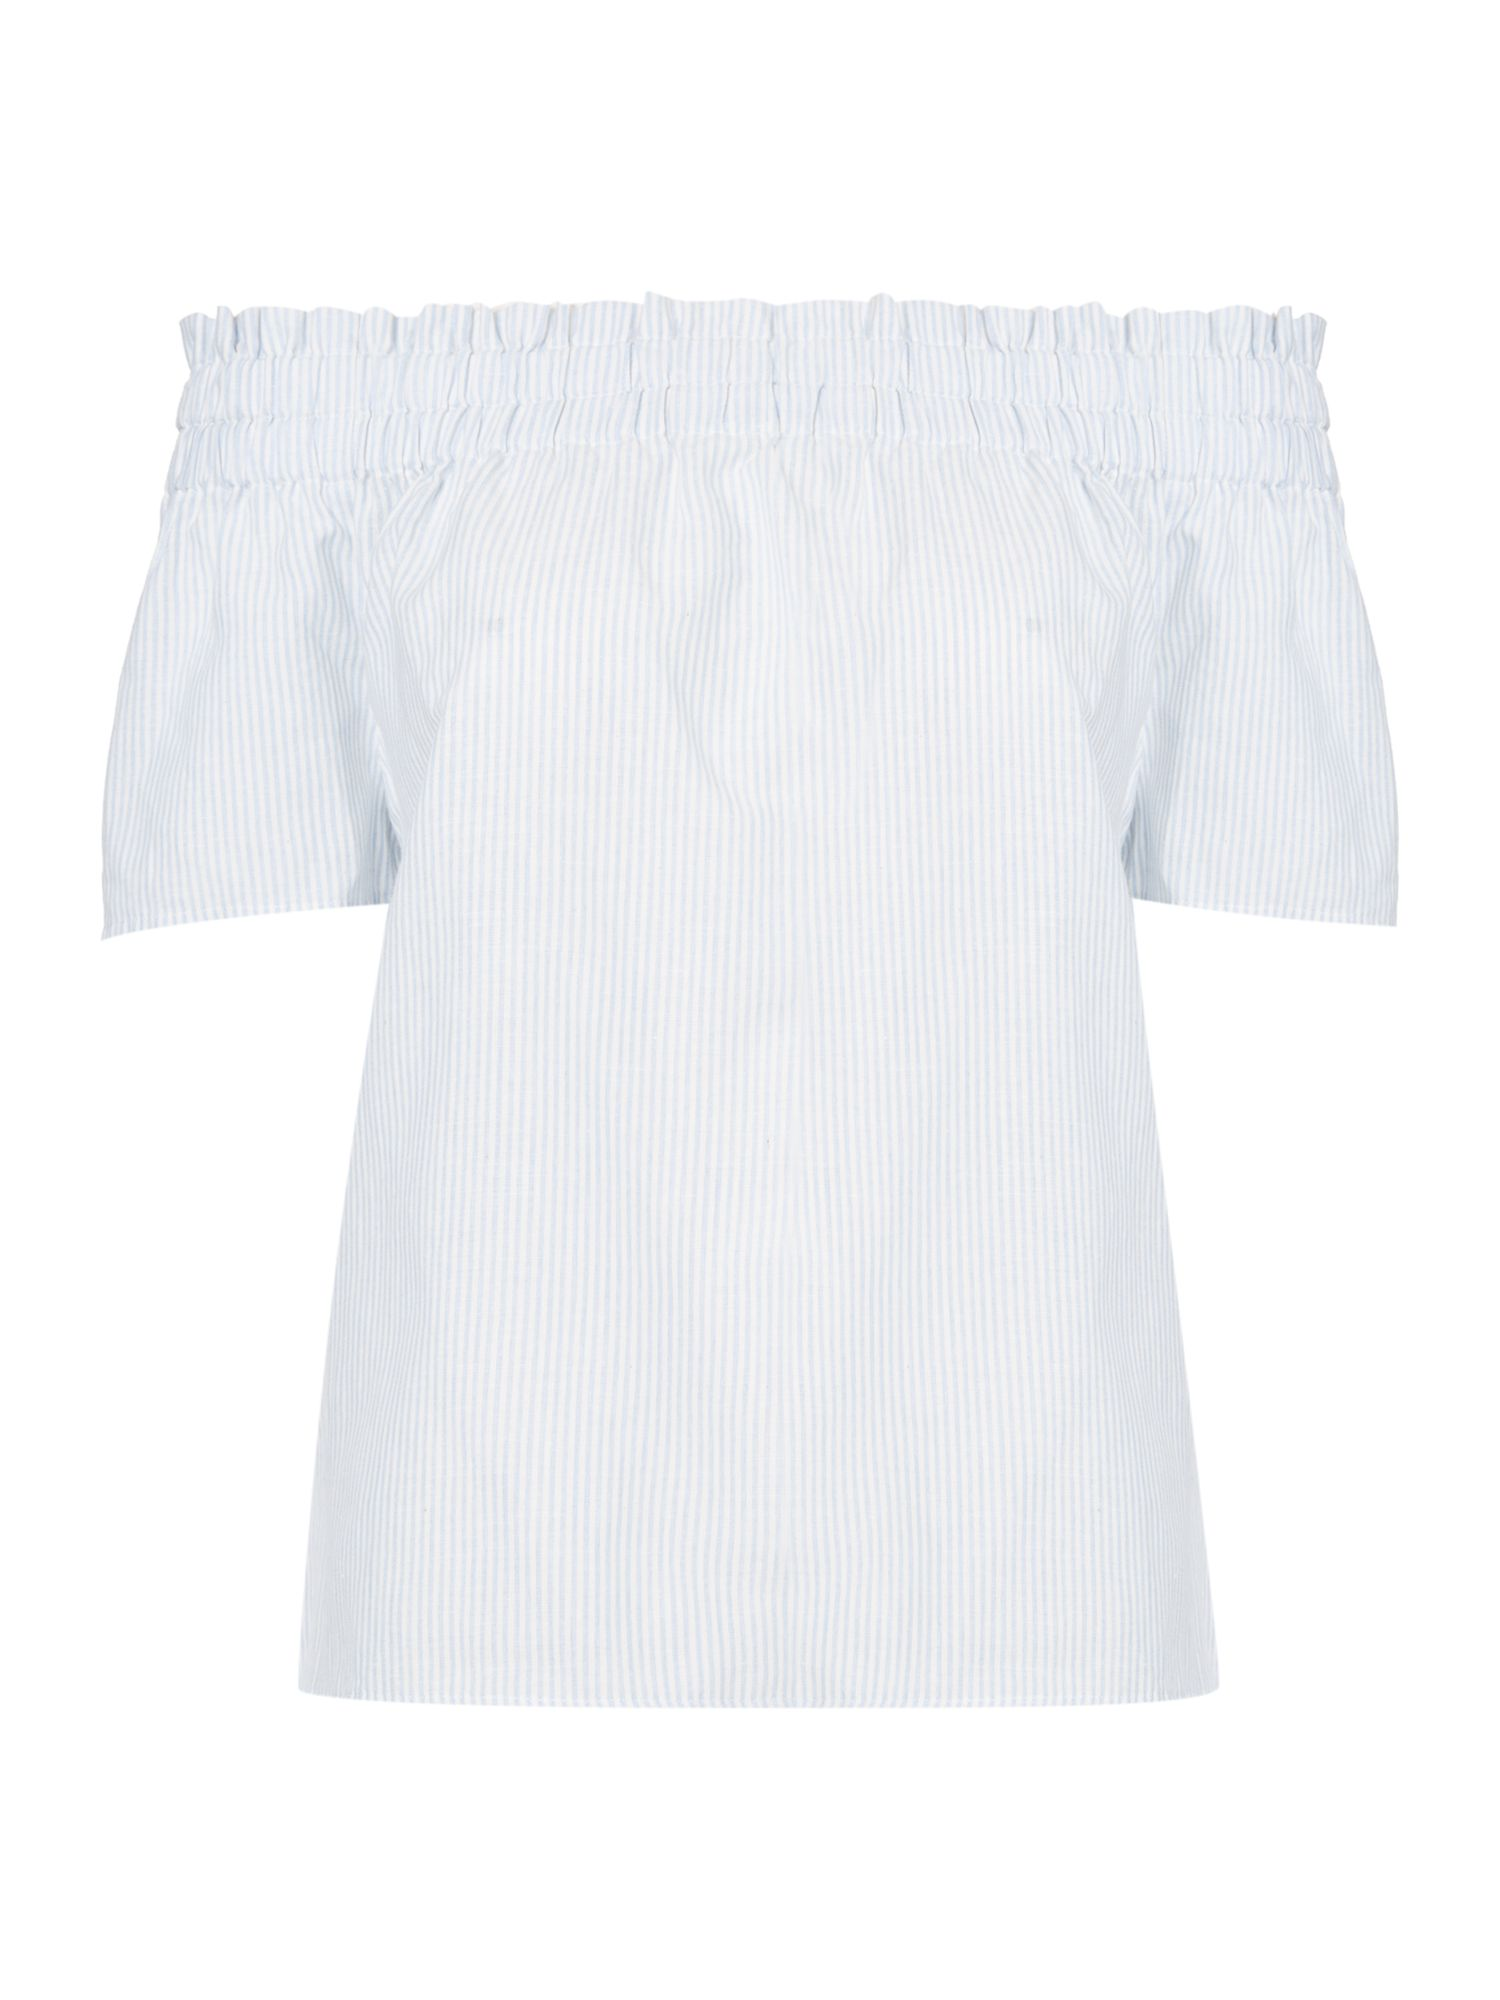 Oui Stripe bardot top, Light Blue